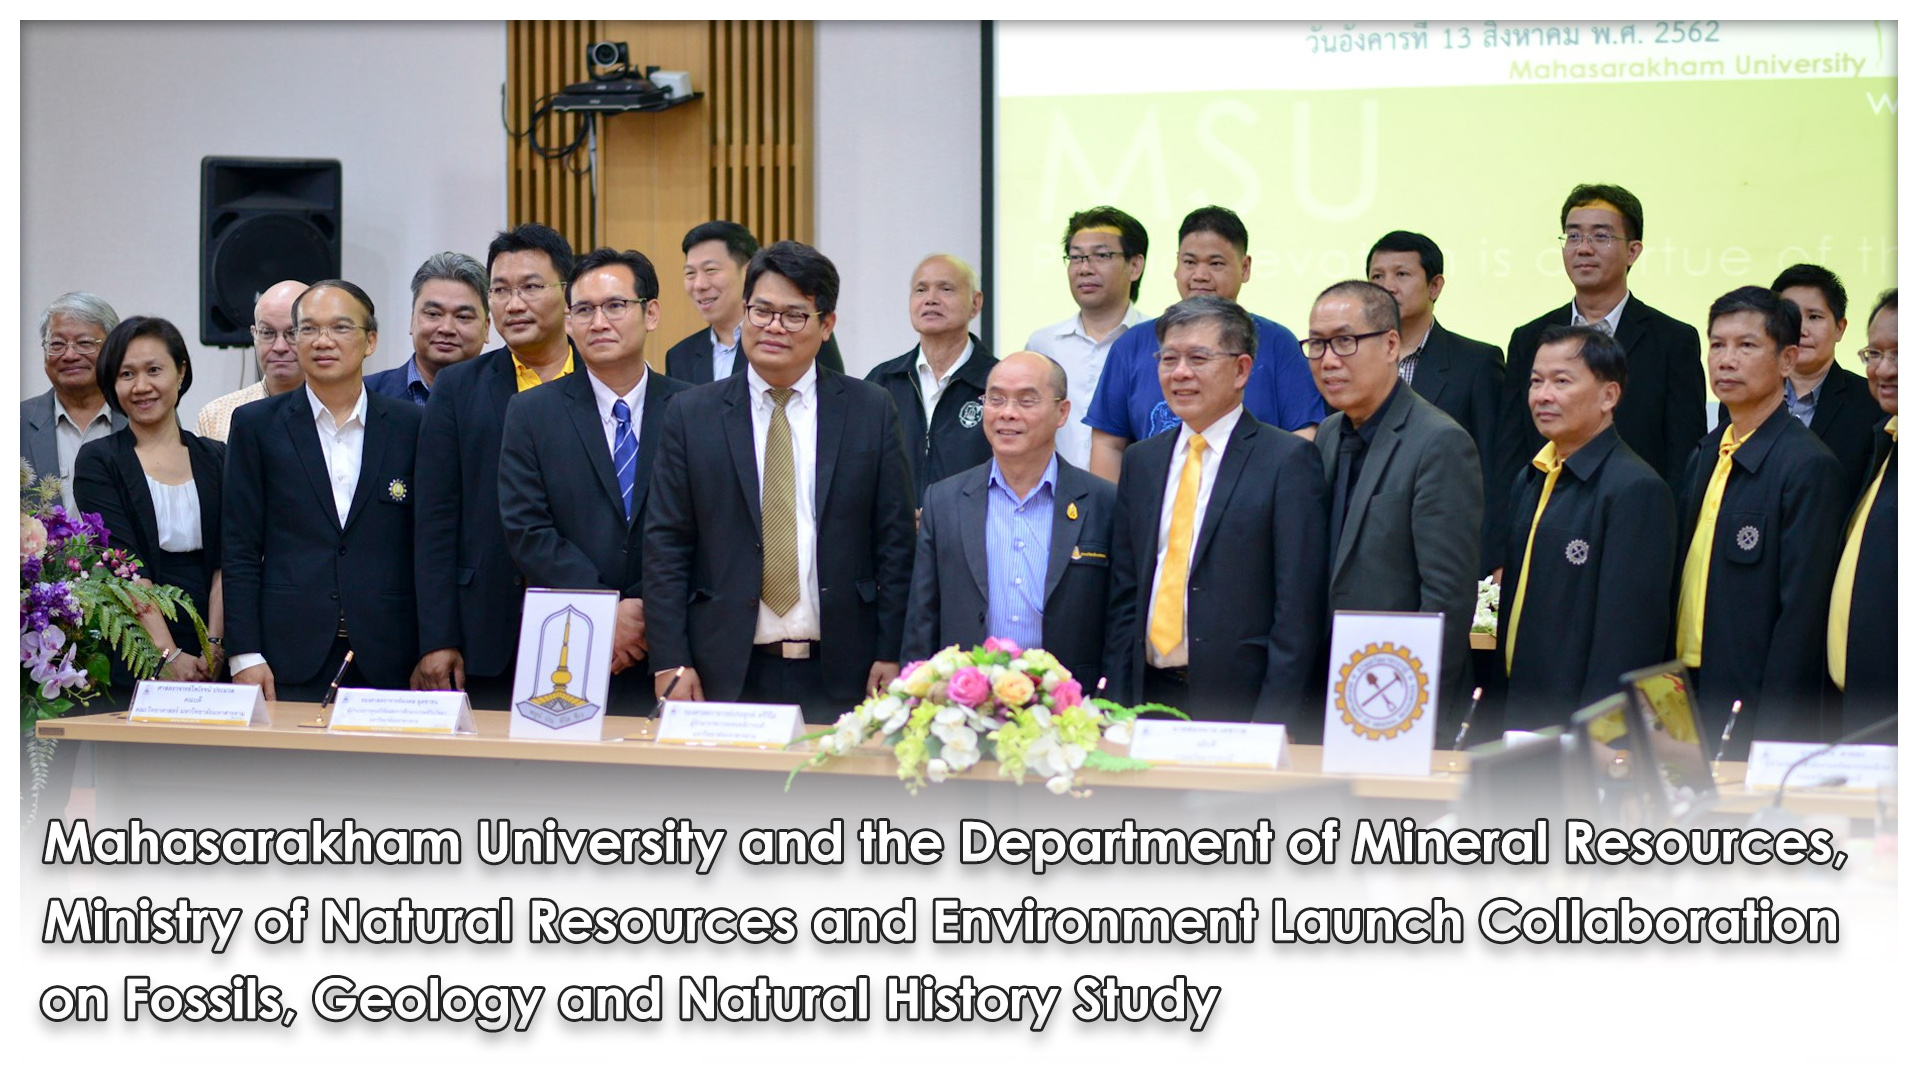 Mahasarakham University and the Department of Mineral Resources, Ministry of Natural Resources and Environment Launch Collaboration on Fossils, Geology and Natural History Study